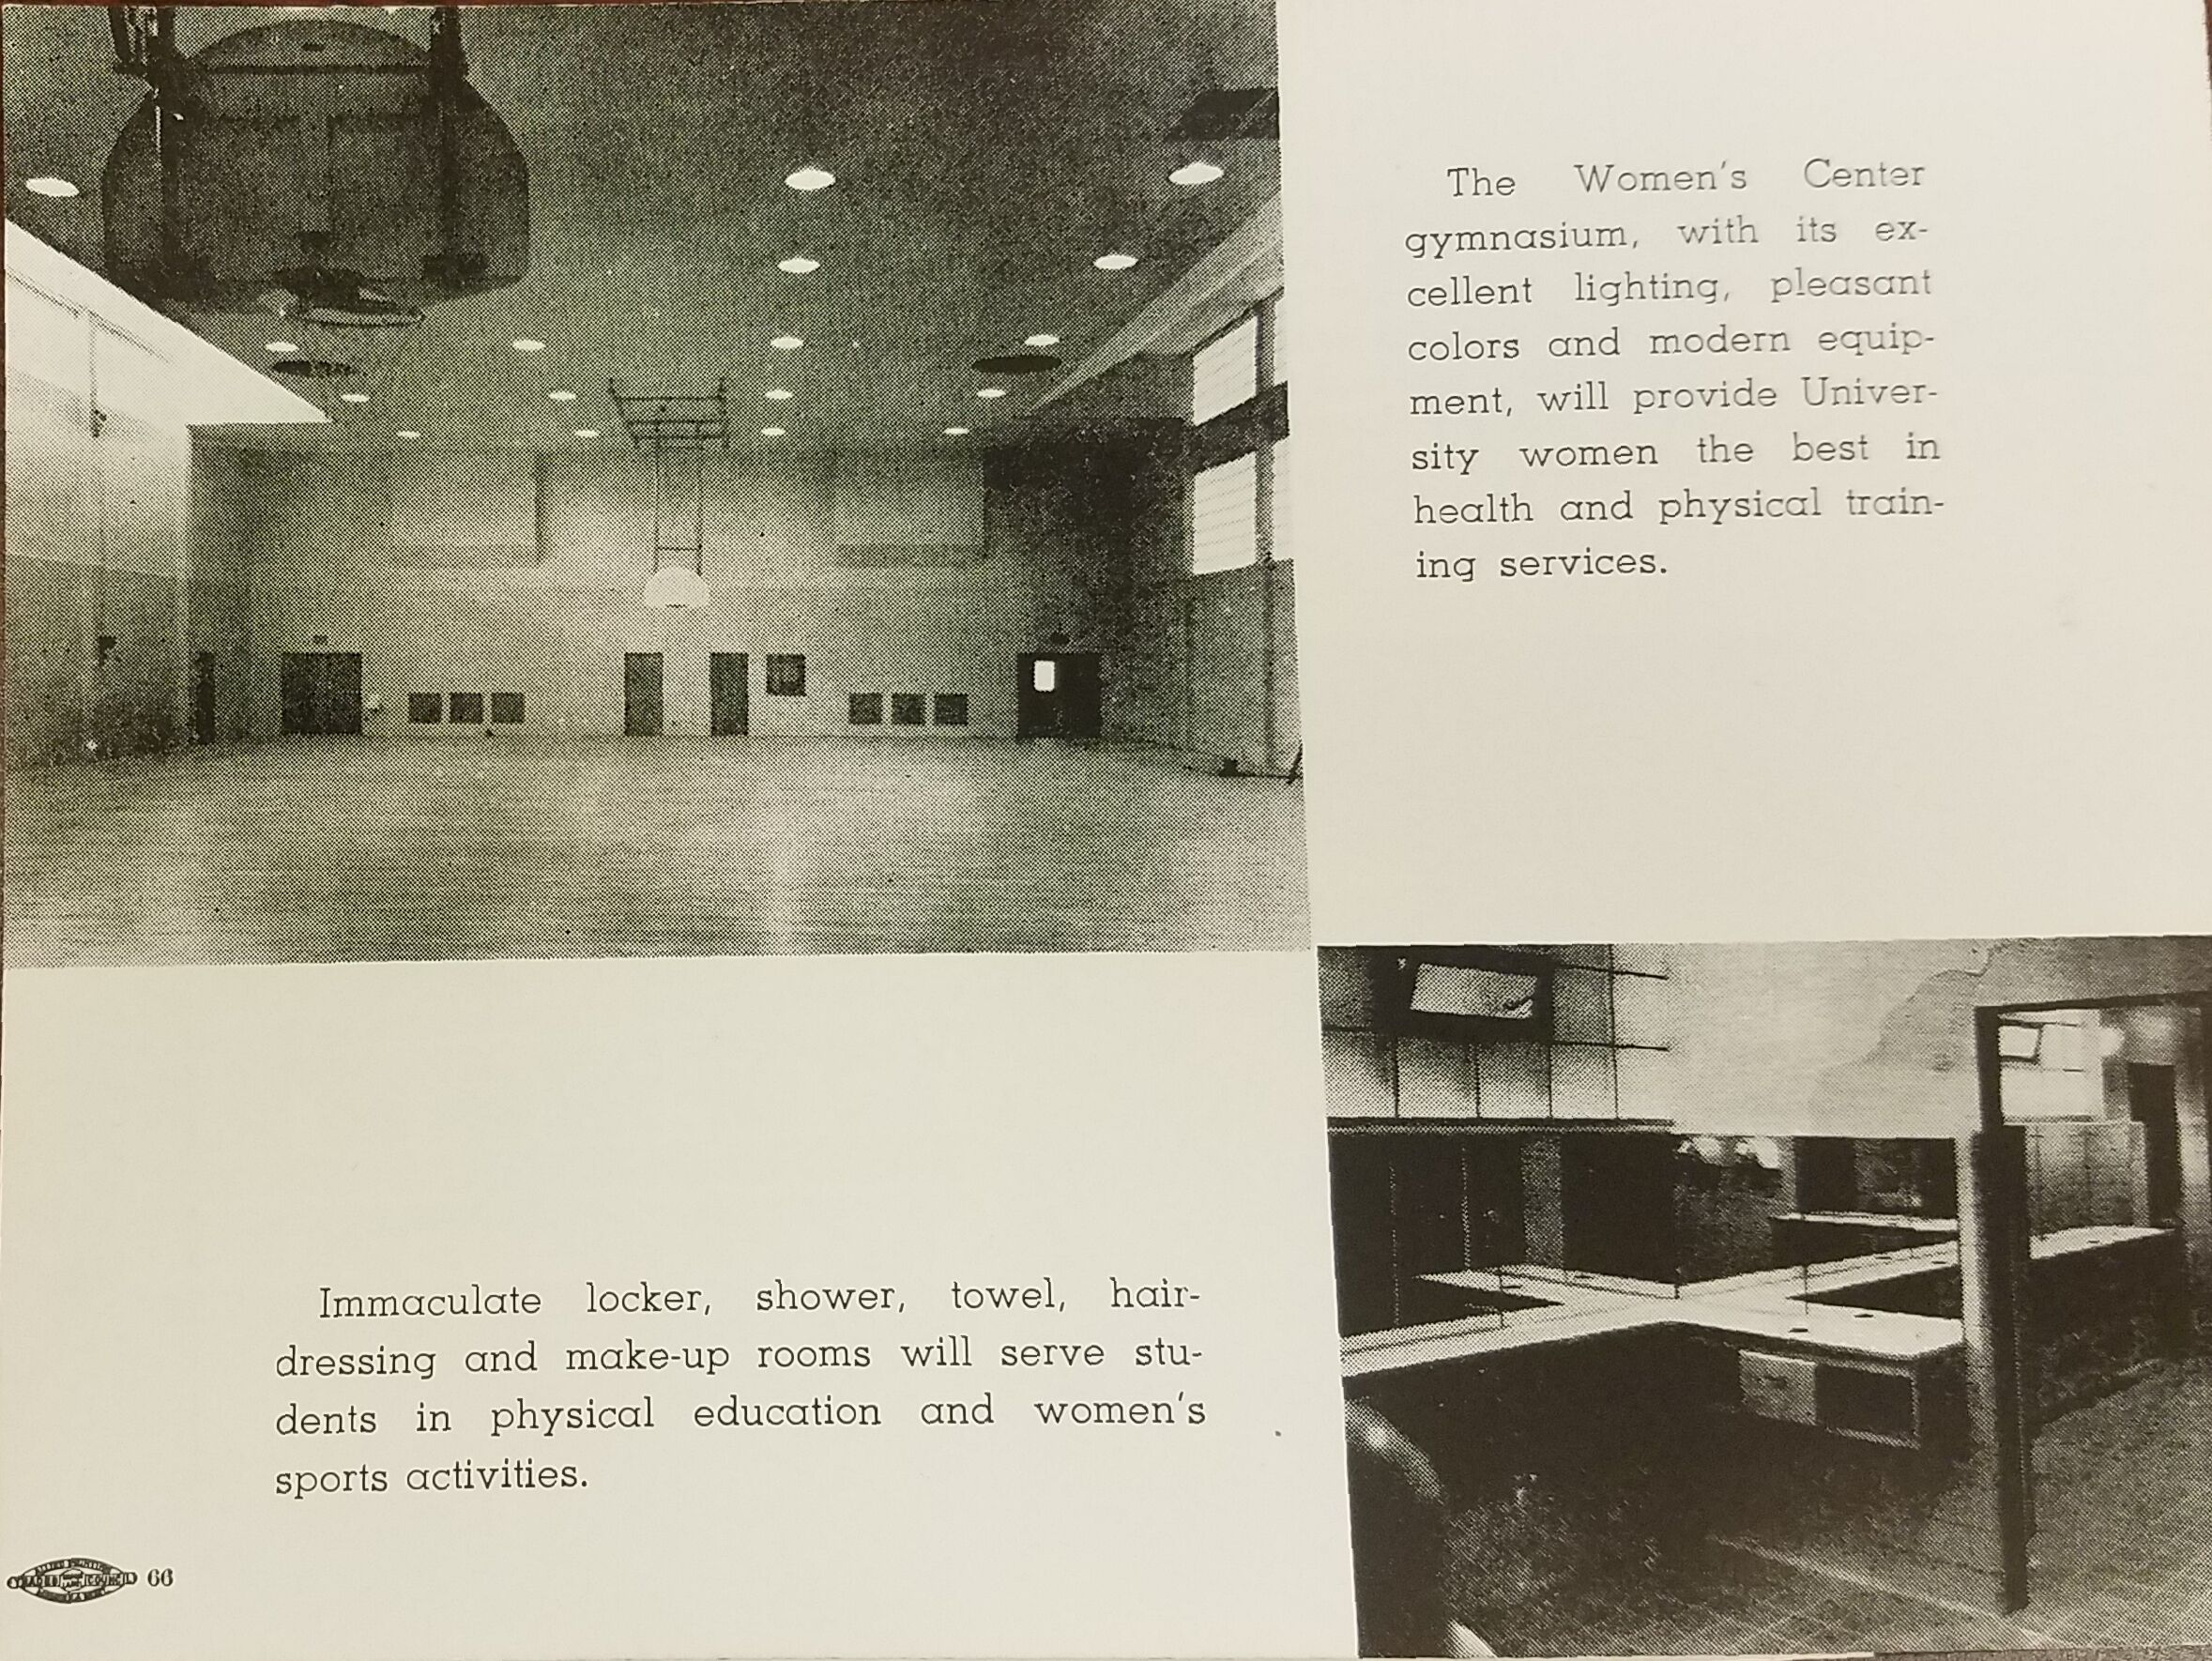 The new gym and locker rooms were a major improvement over facilities in the Old Gym. The new gym recieved continued improvements like painted lines for various sports. (Photo Undated)